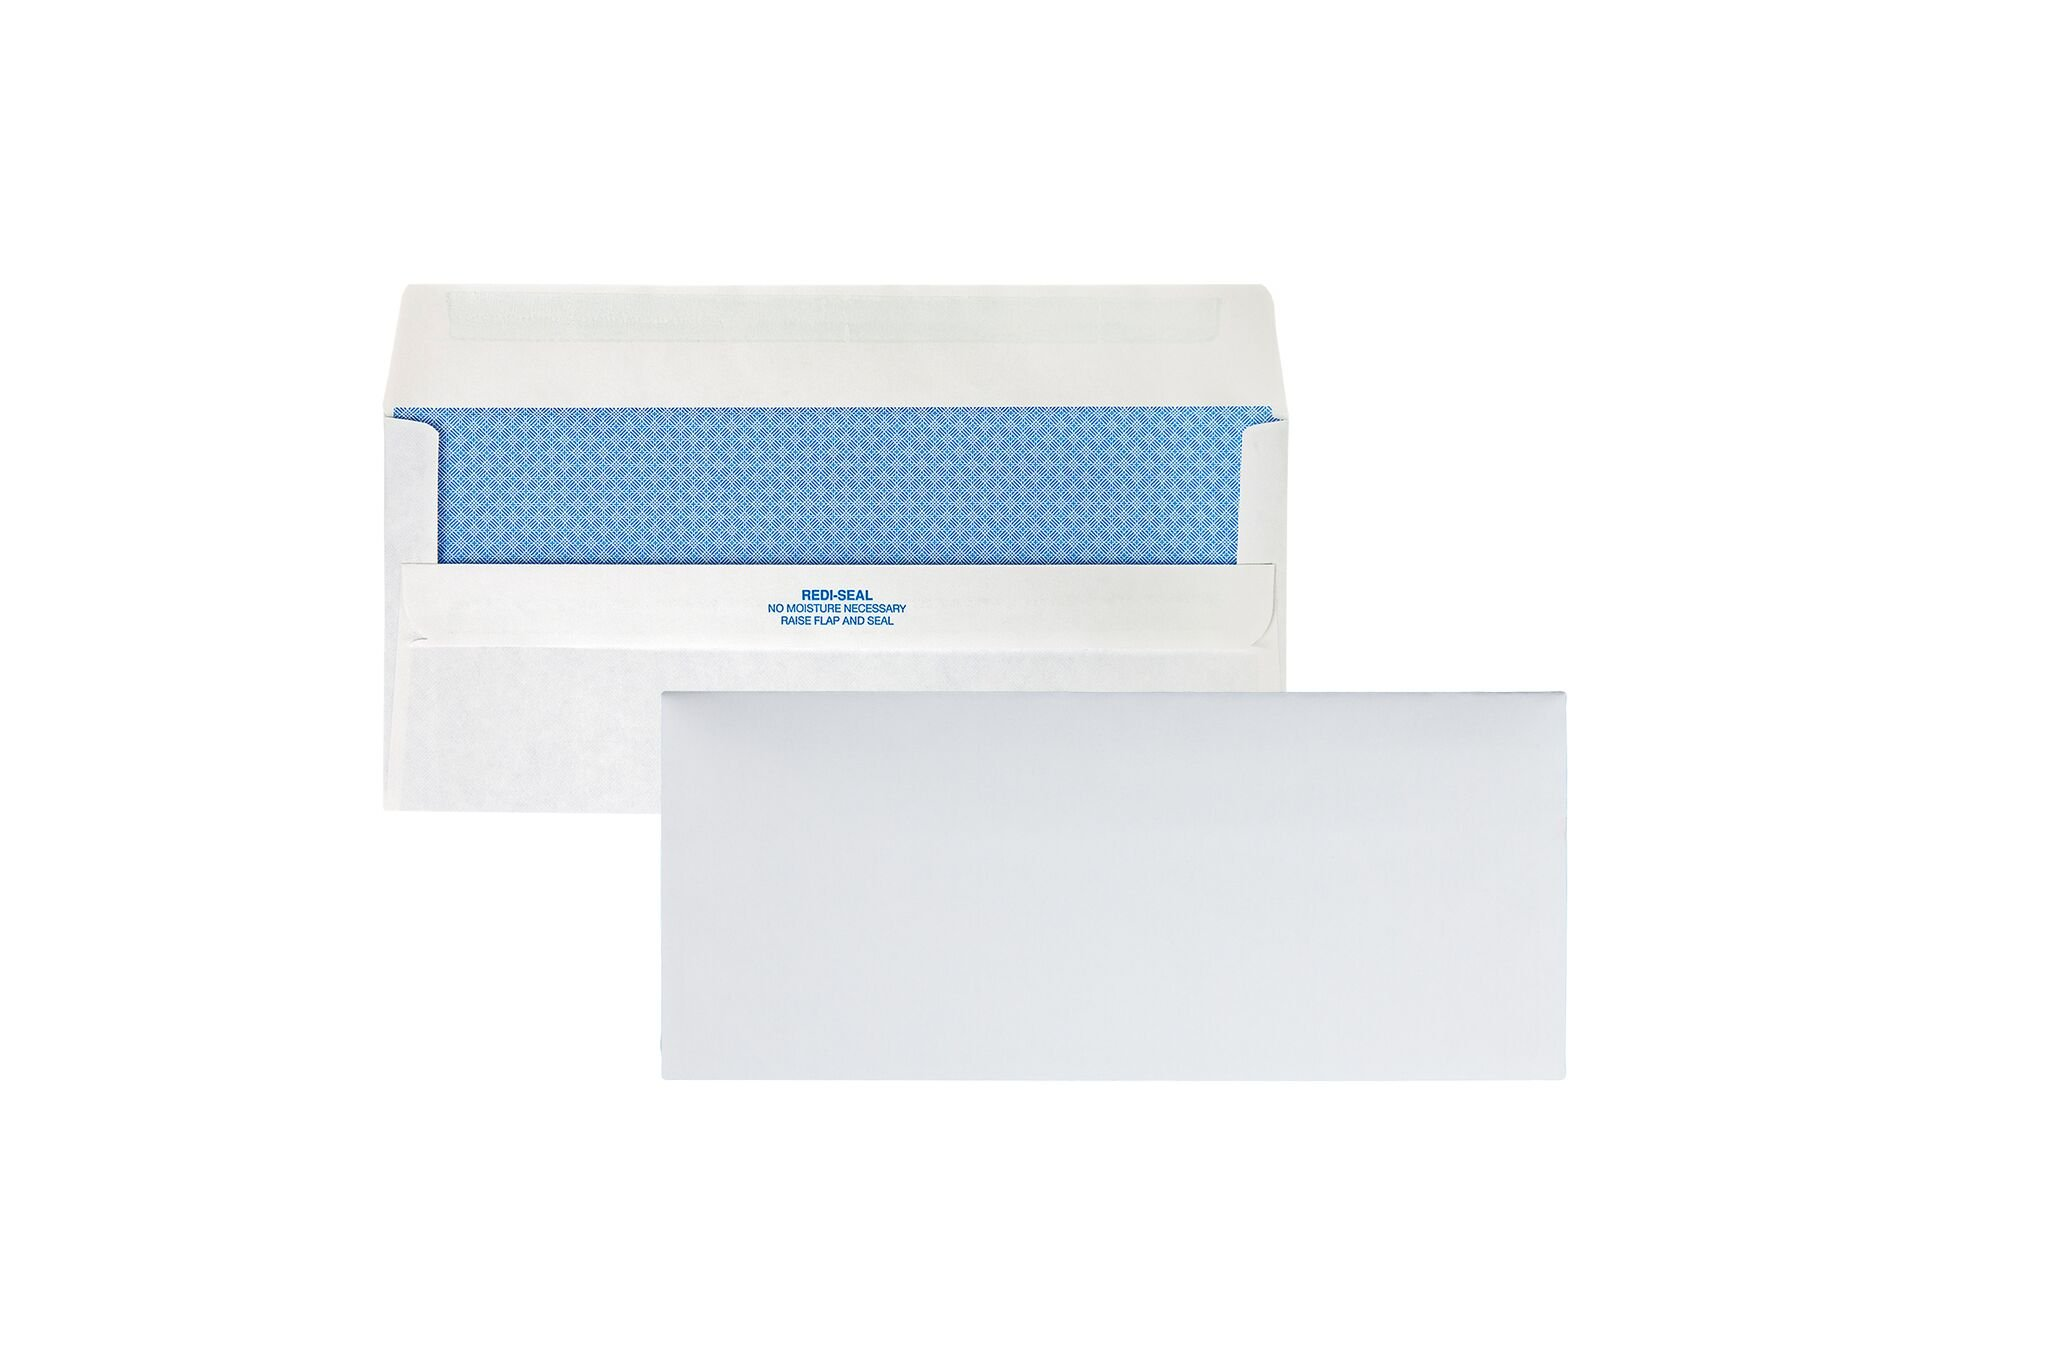 Quality Park Redi-Seal Security Tint Envelopes, #10, White, 500/Box (11218) by Quality Park